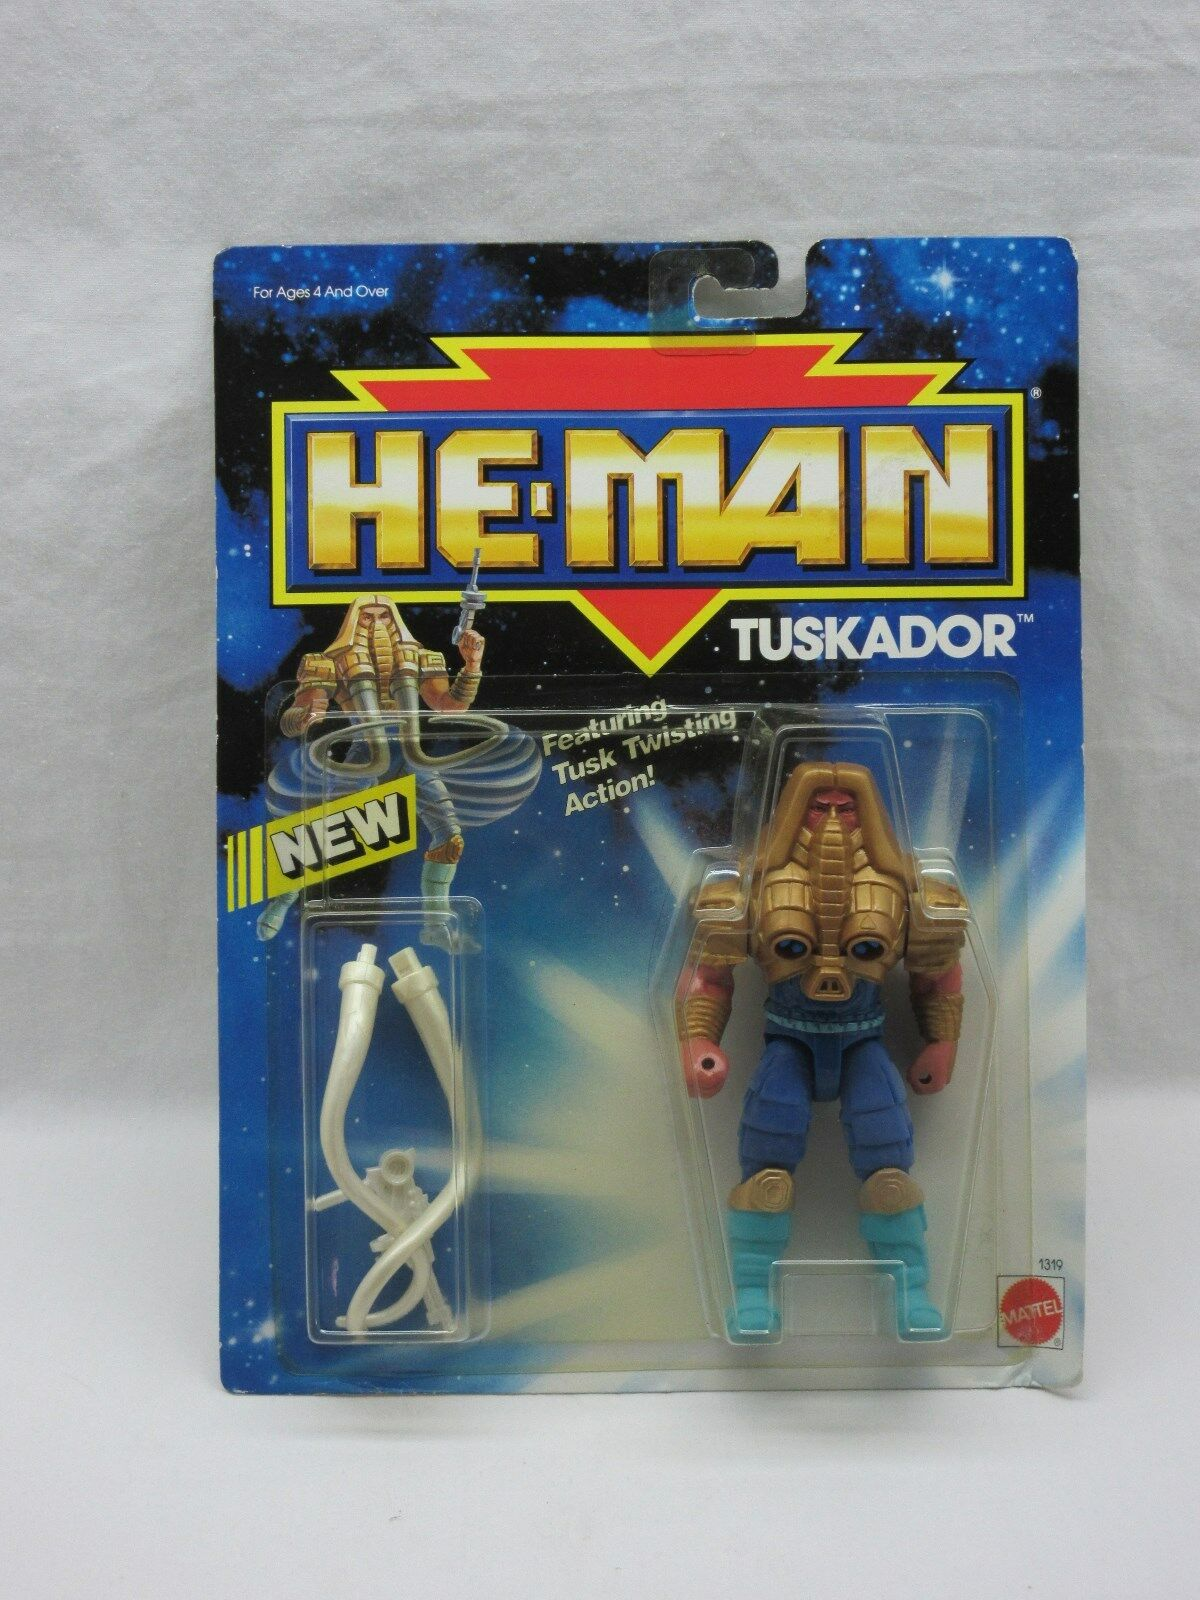 MOTU,TUSKADOR,He-Man Nuovo Adventures,MOC,sealed,figure,Masters of the Universe